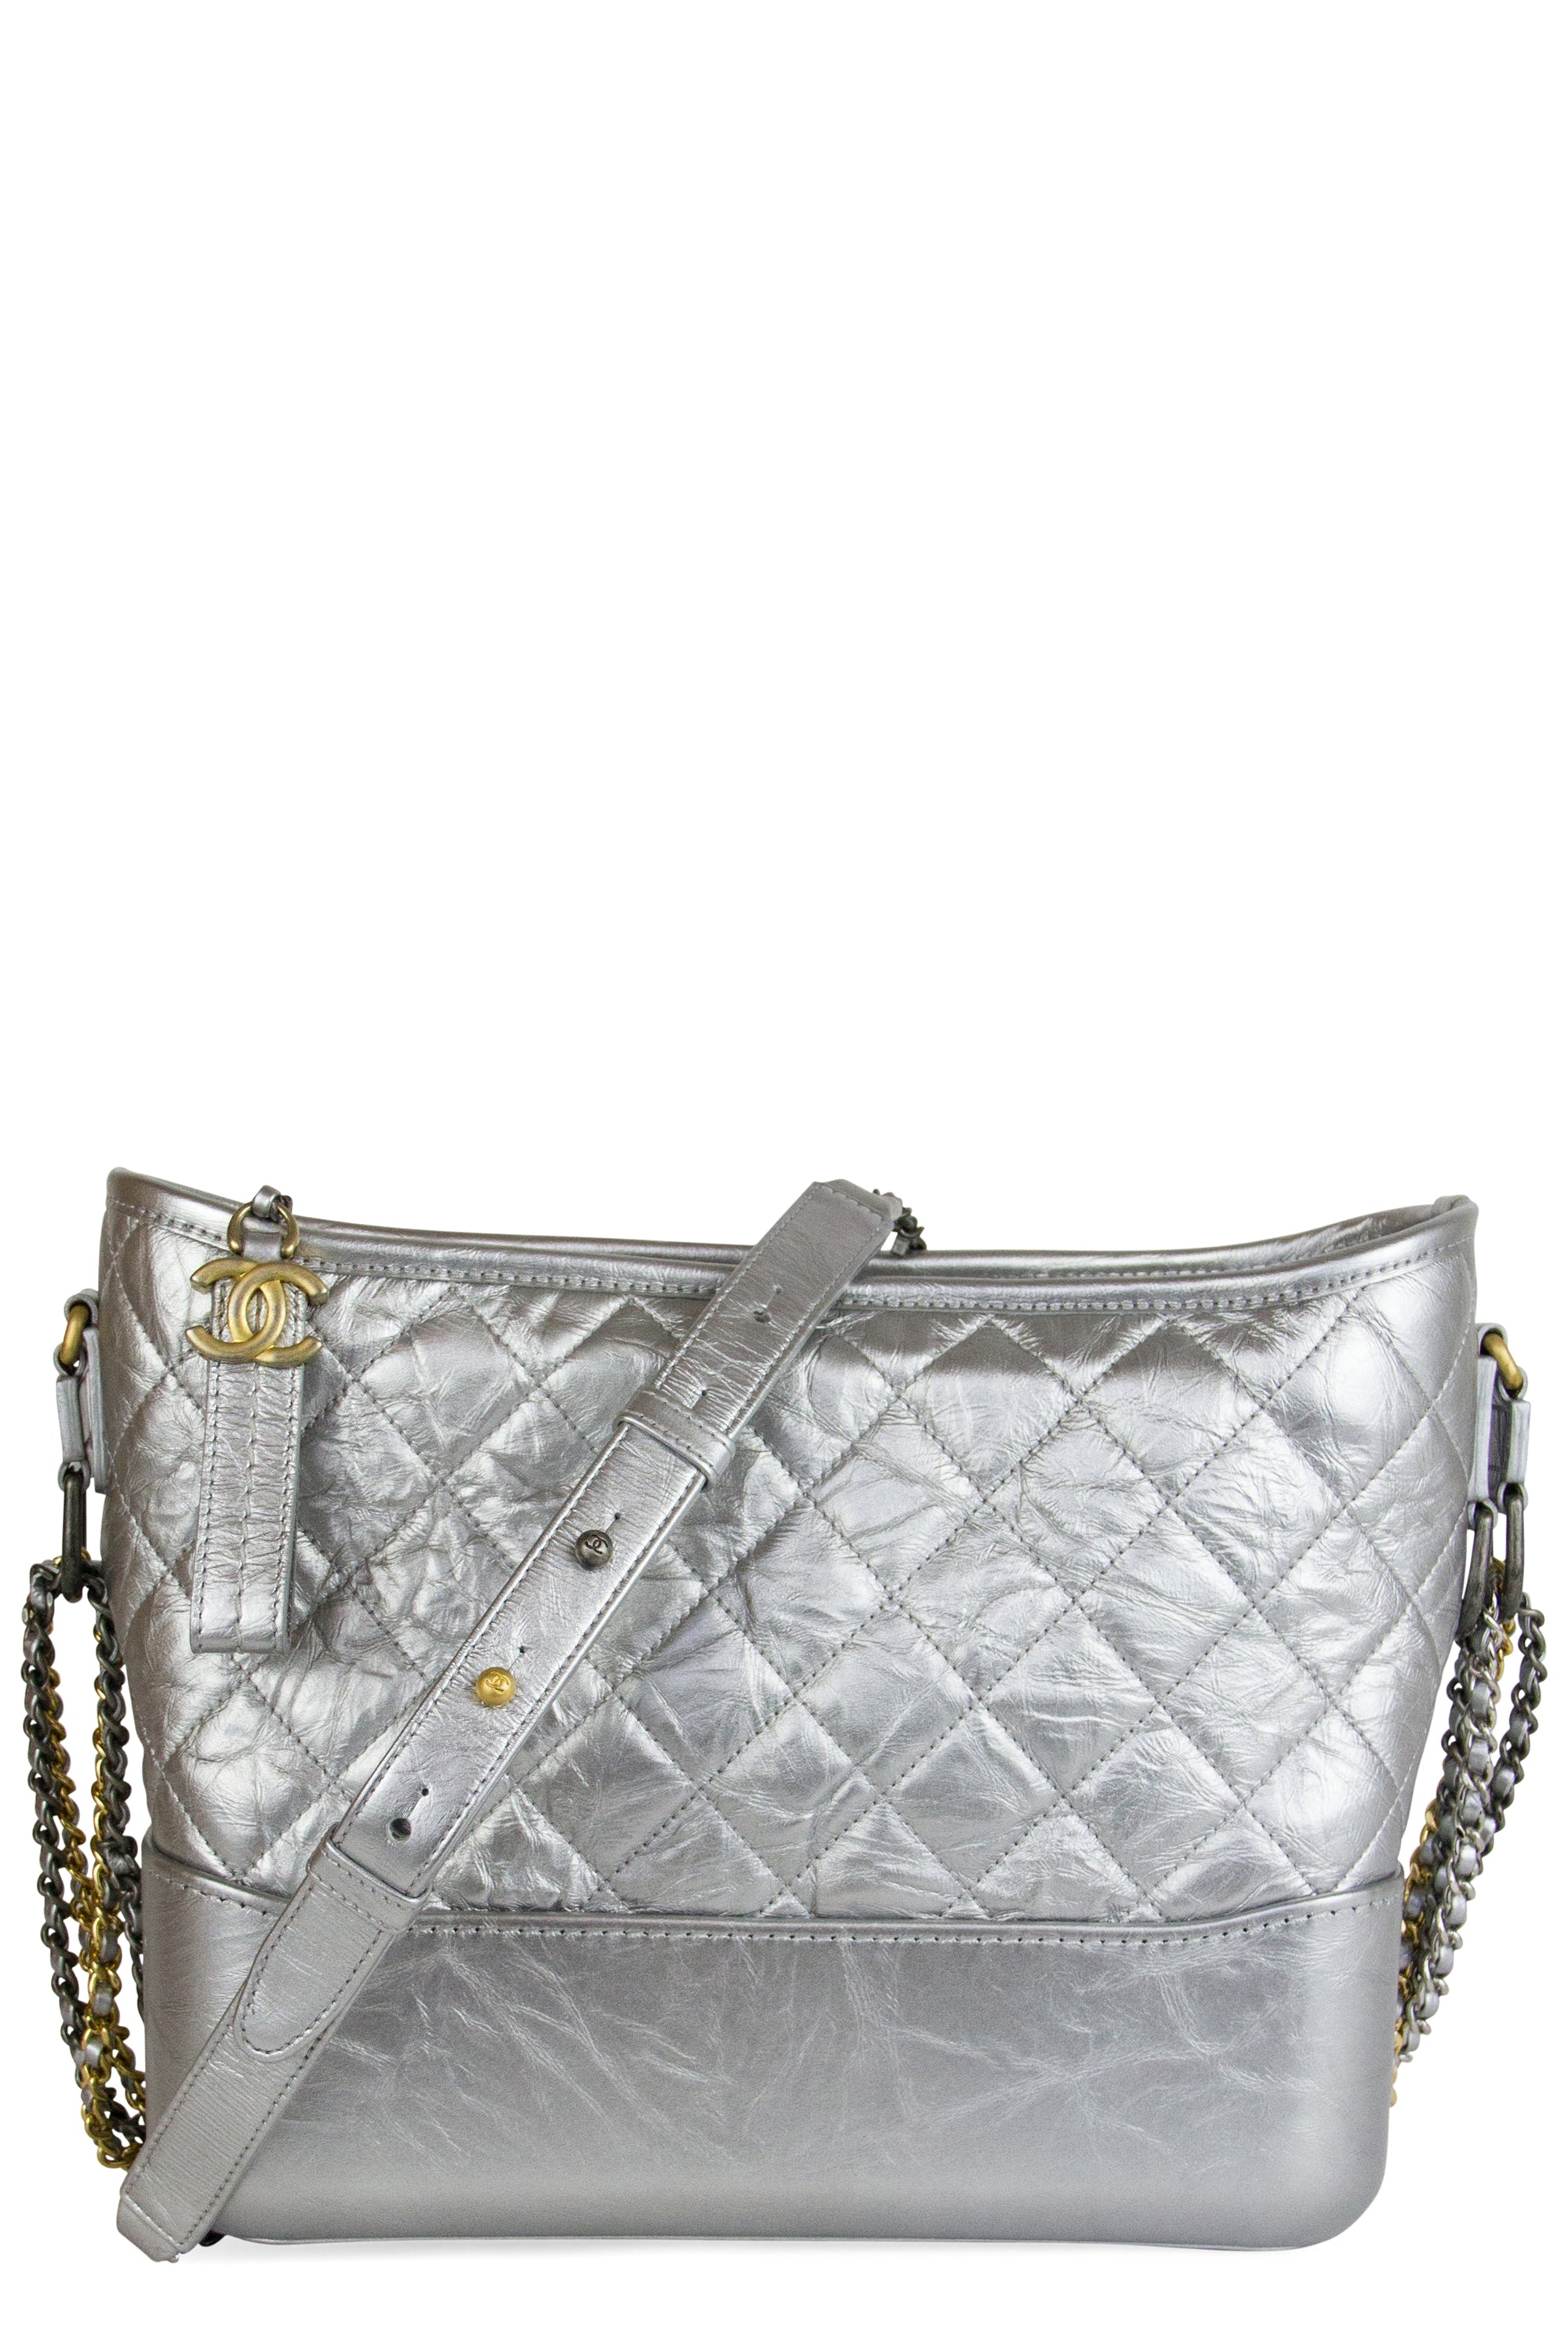 Chanel Hobo Gabrielle Bag Medium Frontalansicht Silber